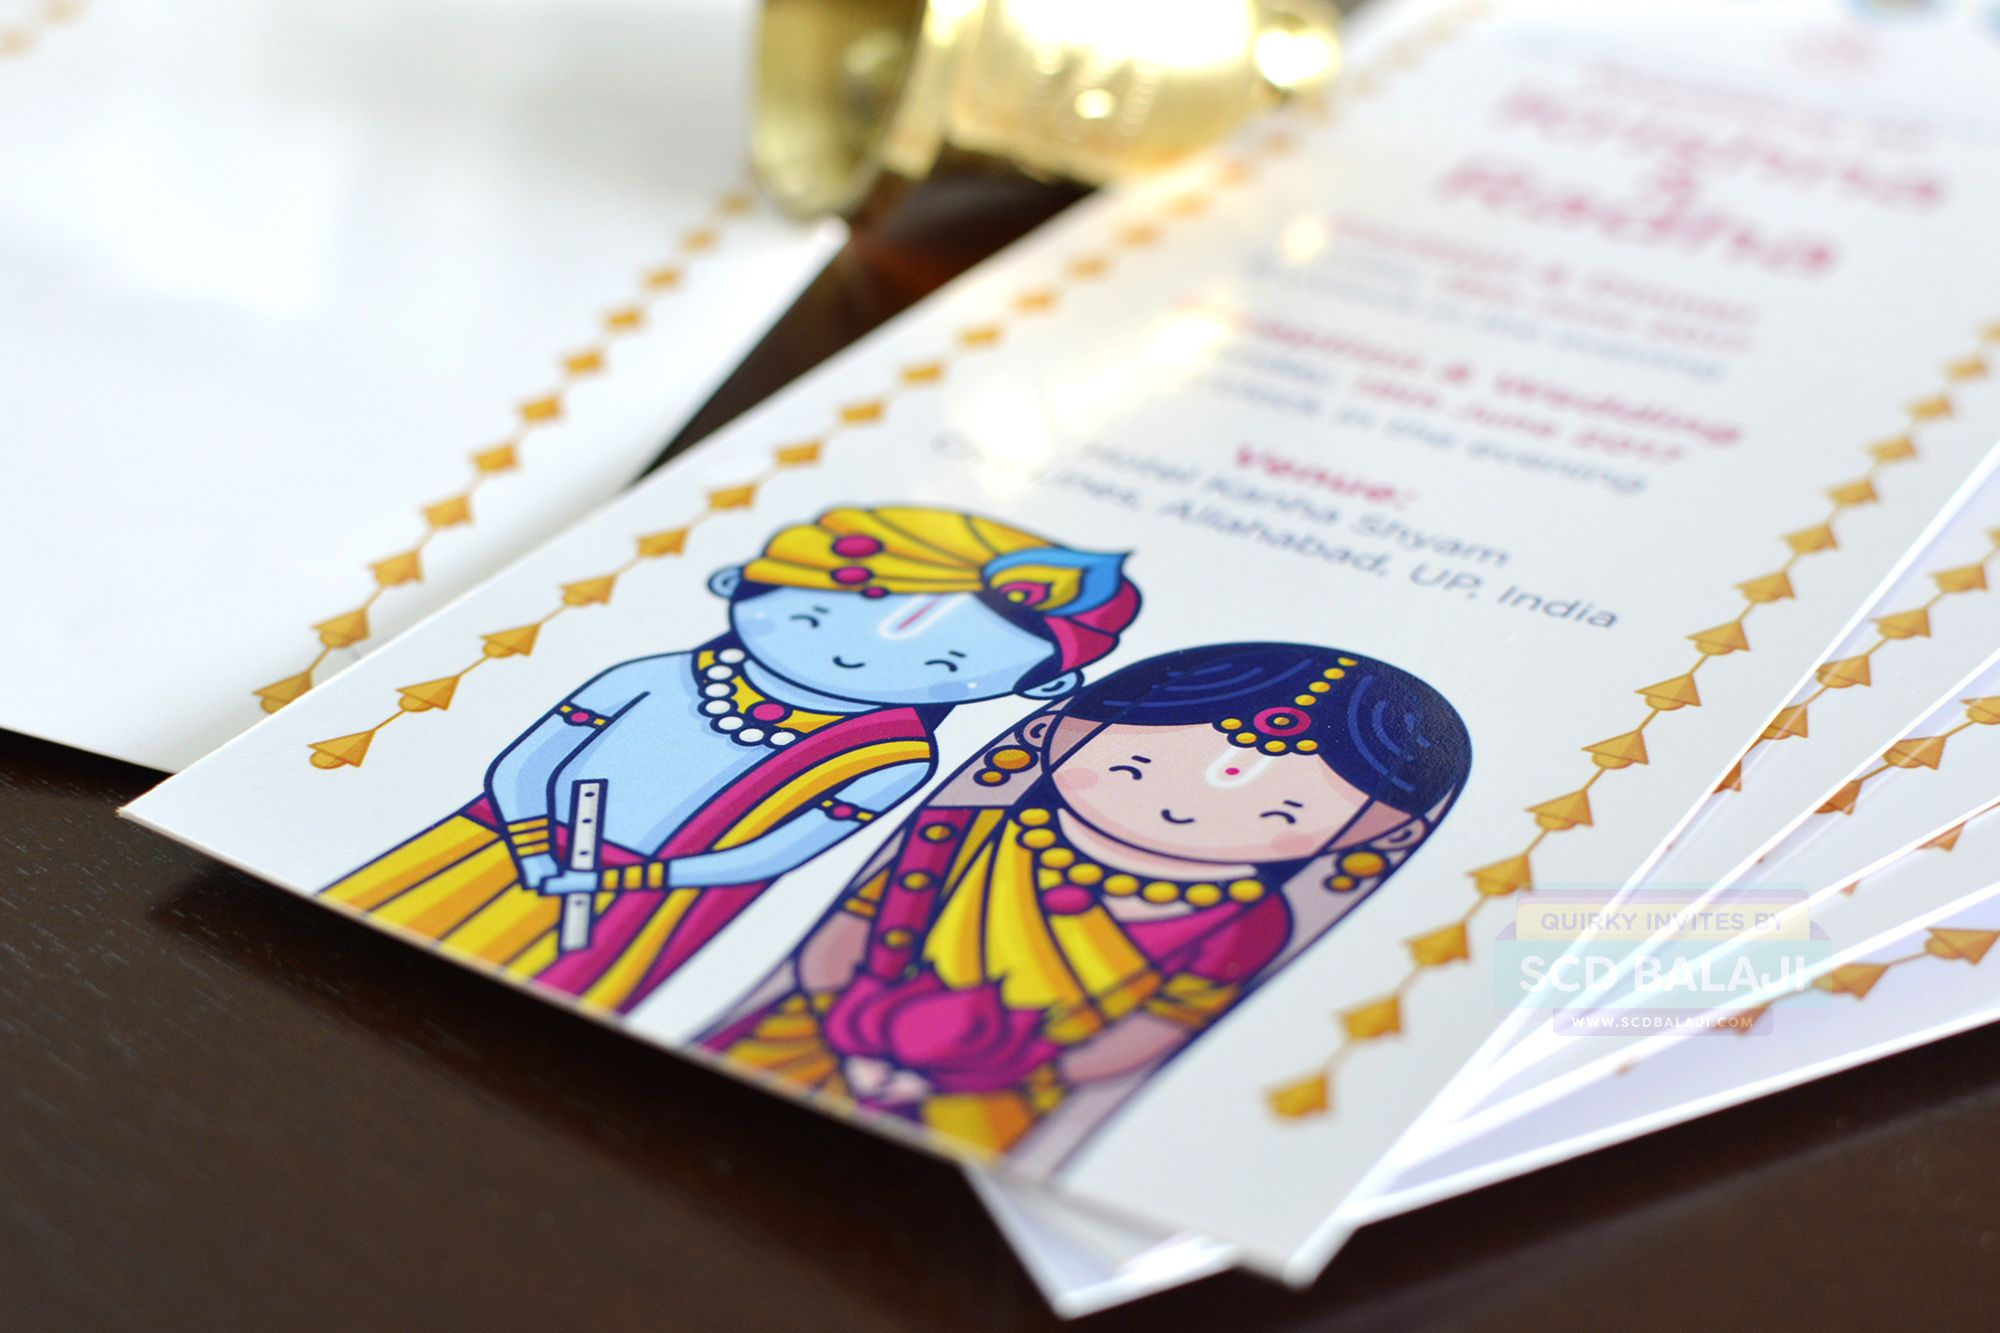 how to address couples on wedding invitations%0A Radha Krishna Wedding Invitation  Cute Couple Collection  Explore the  complete invitation at www